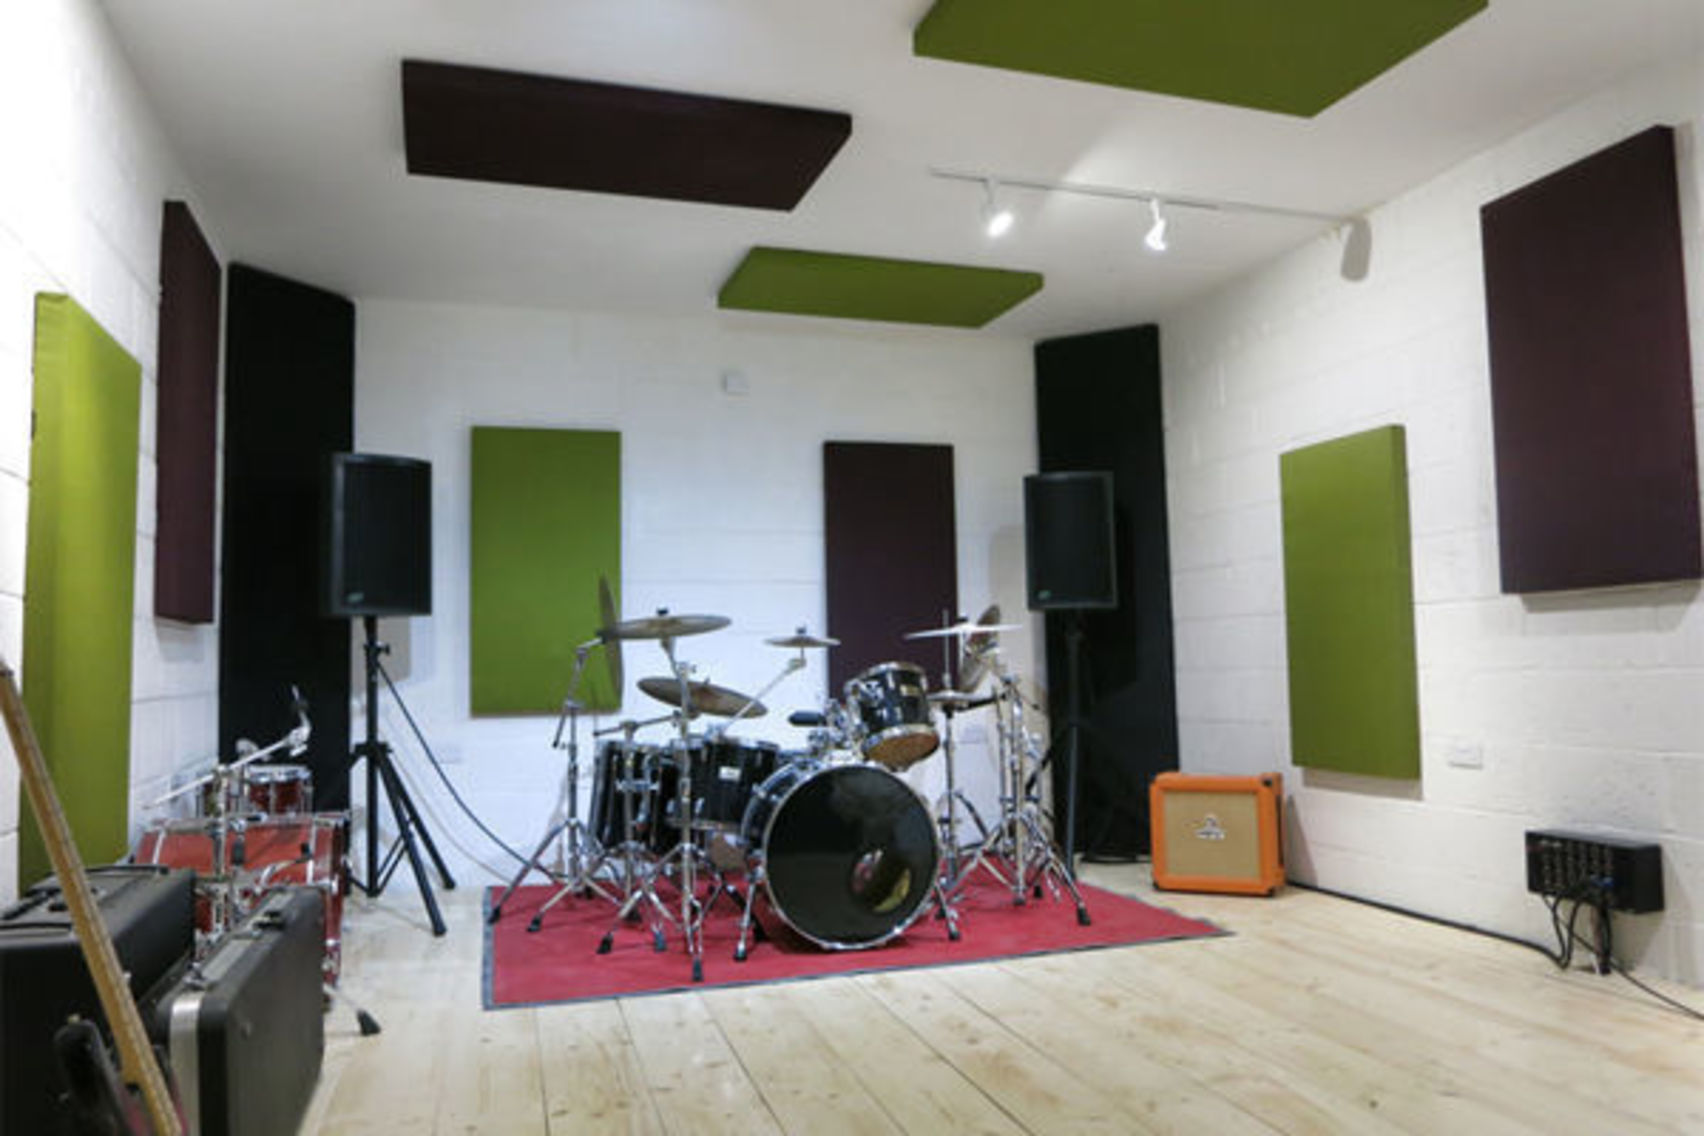 Studio  2, The Blue Studios